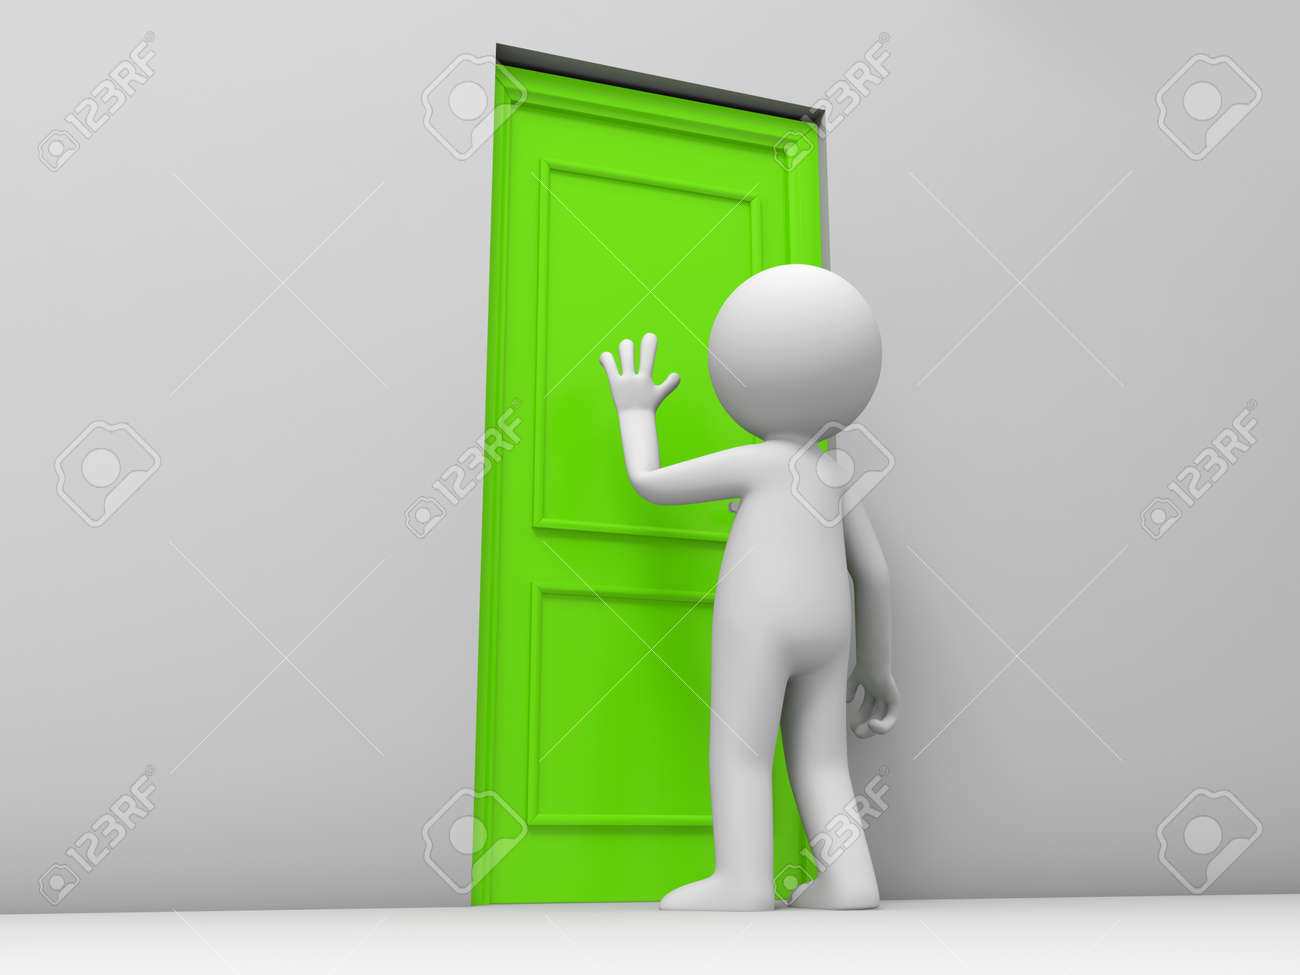 Door A person knock at a door Stock Photo - 15458188 : knock door - Pezcame.Com